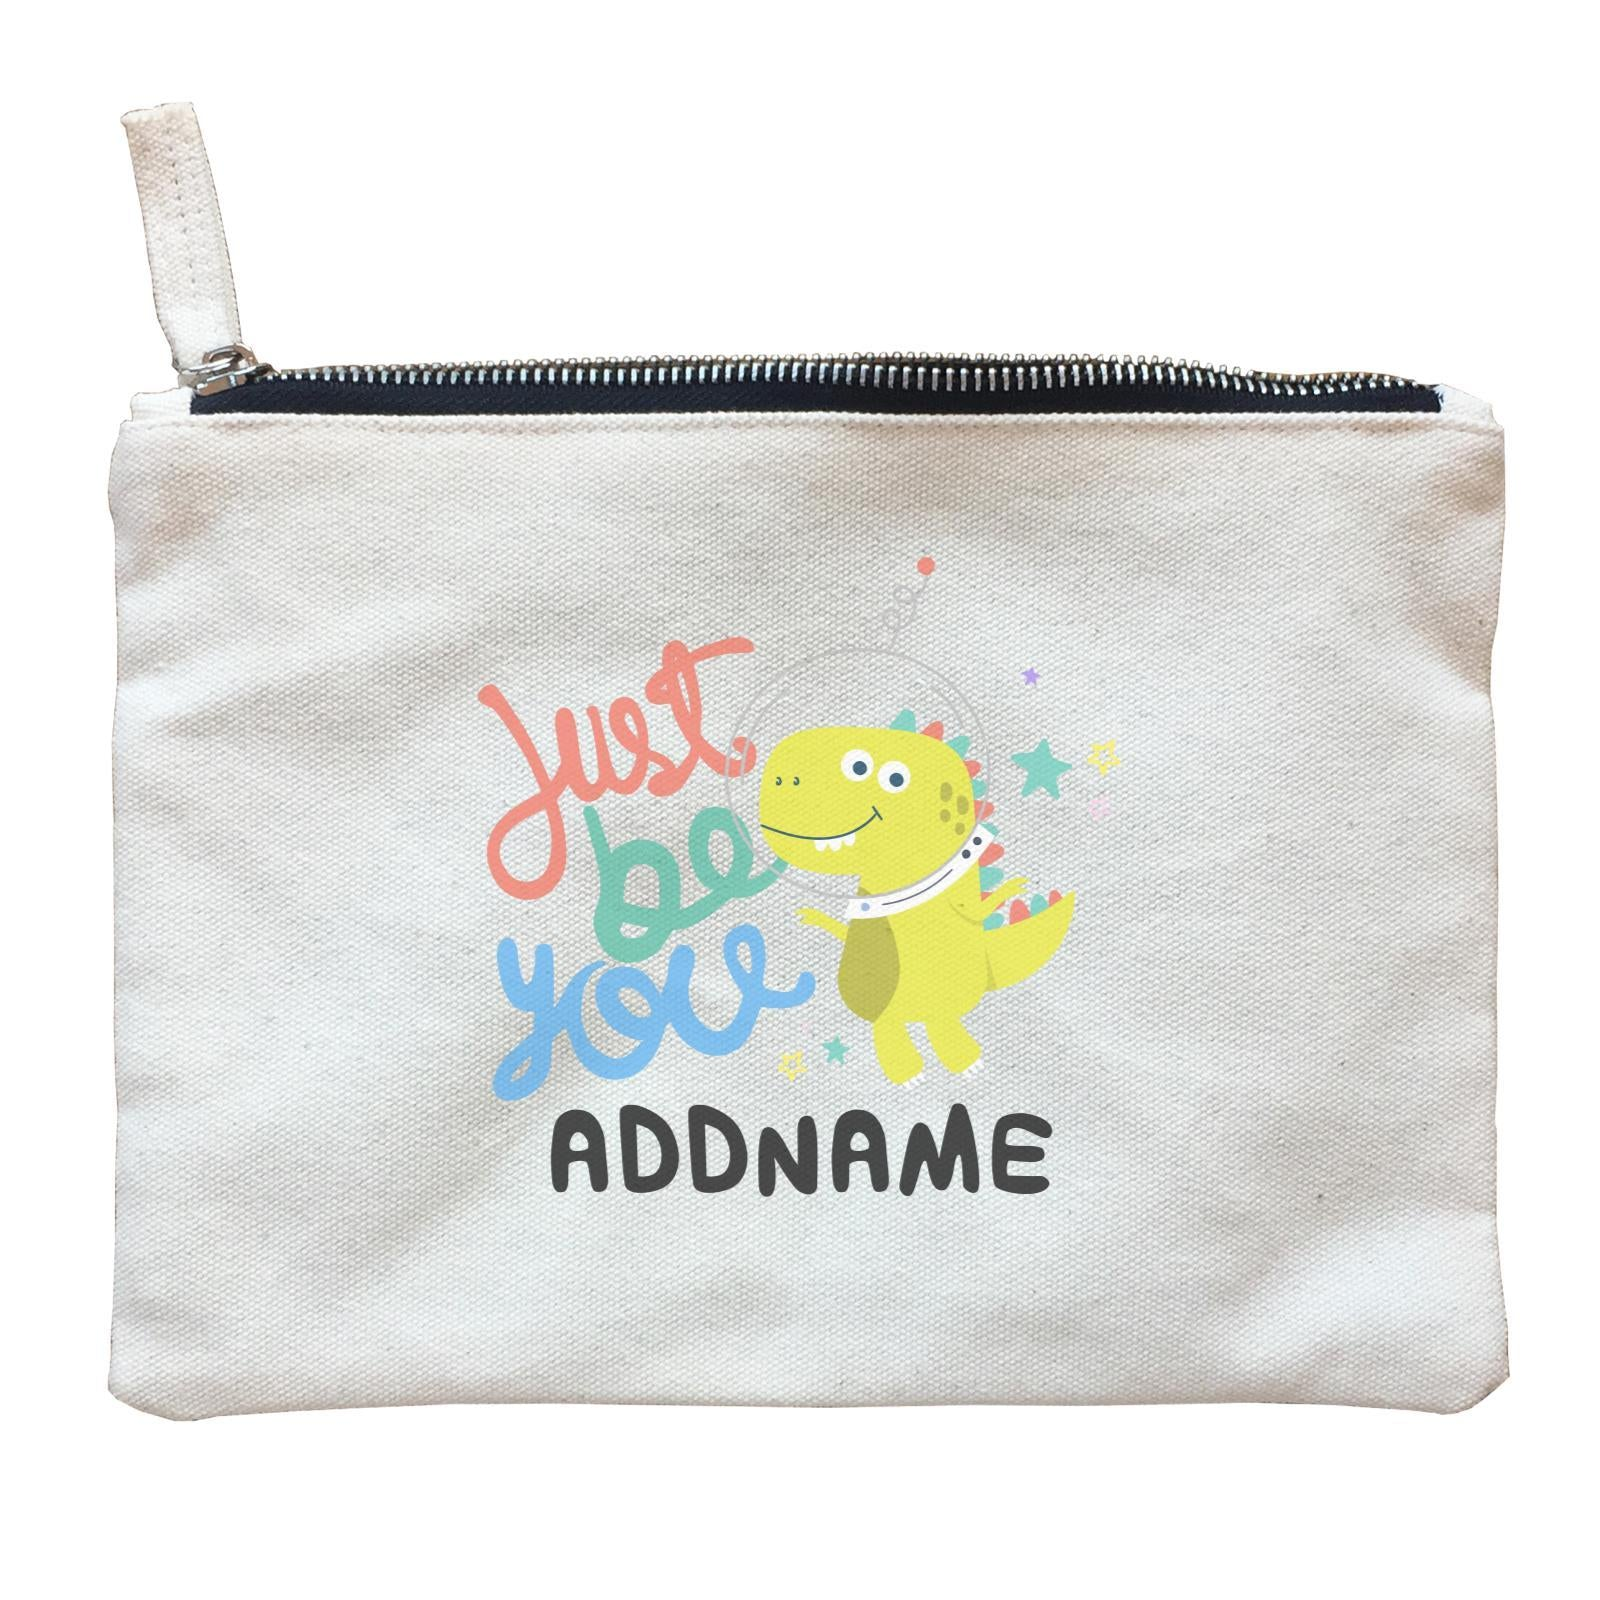 Children's Day Gift Series Just Be You Space Dinosaur Addname  Zipper Pouch